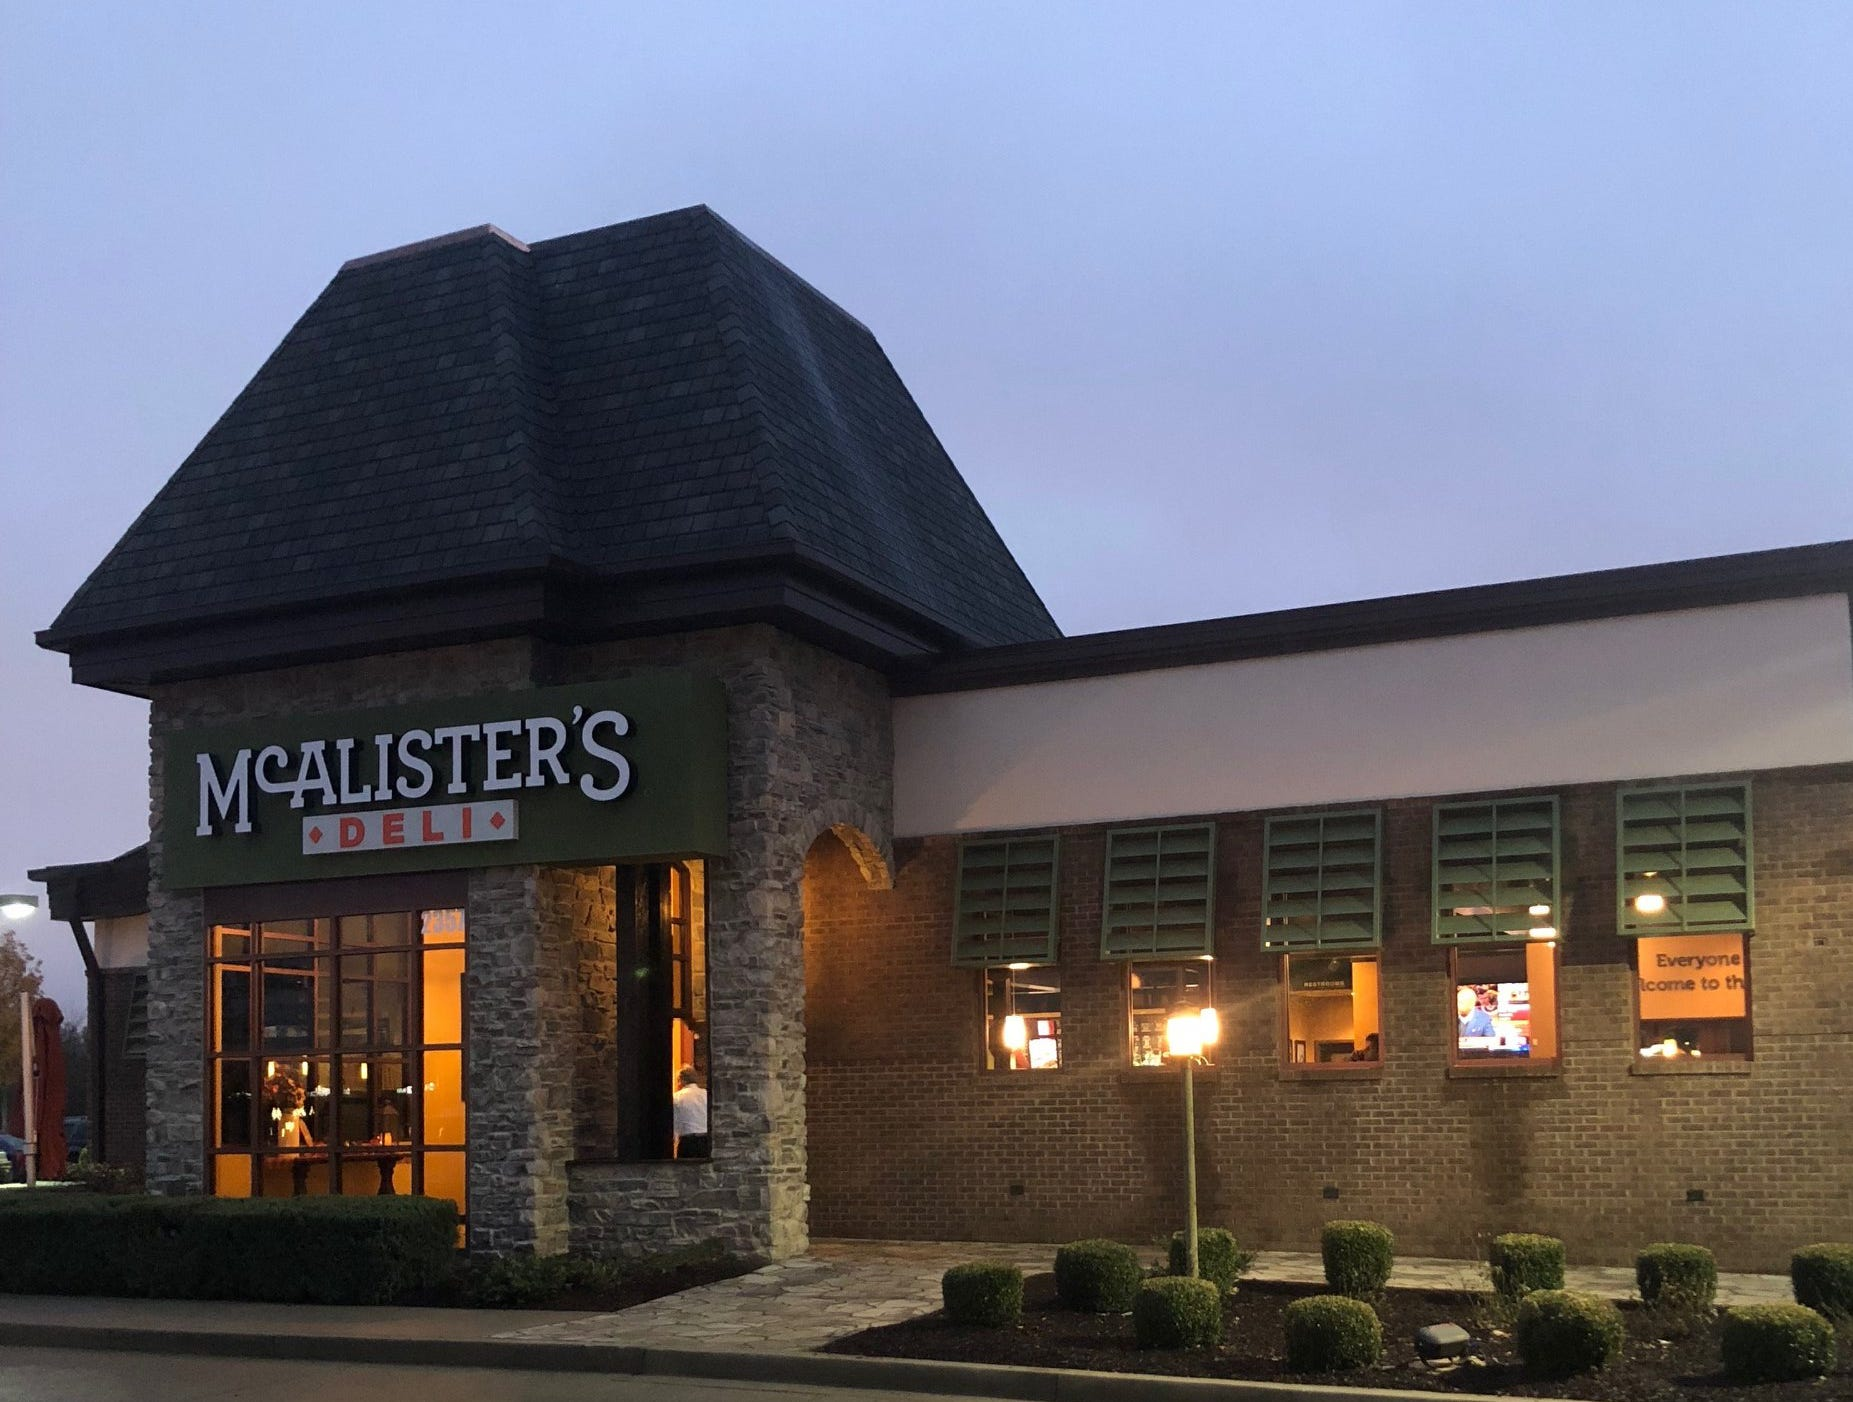 McAlister's Deli finally opened Tuesday, Nov. 13, at the space once occupied by Peter D's American Southern Bistro at 2357 Medical Center Parkway.